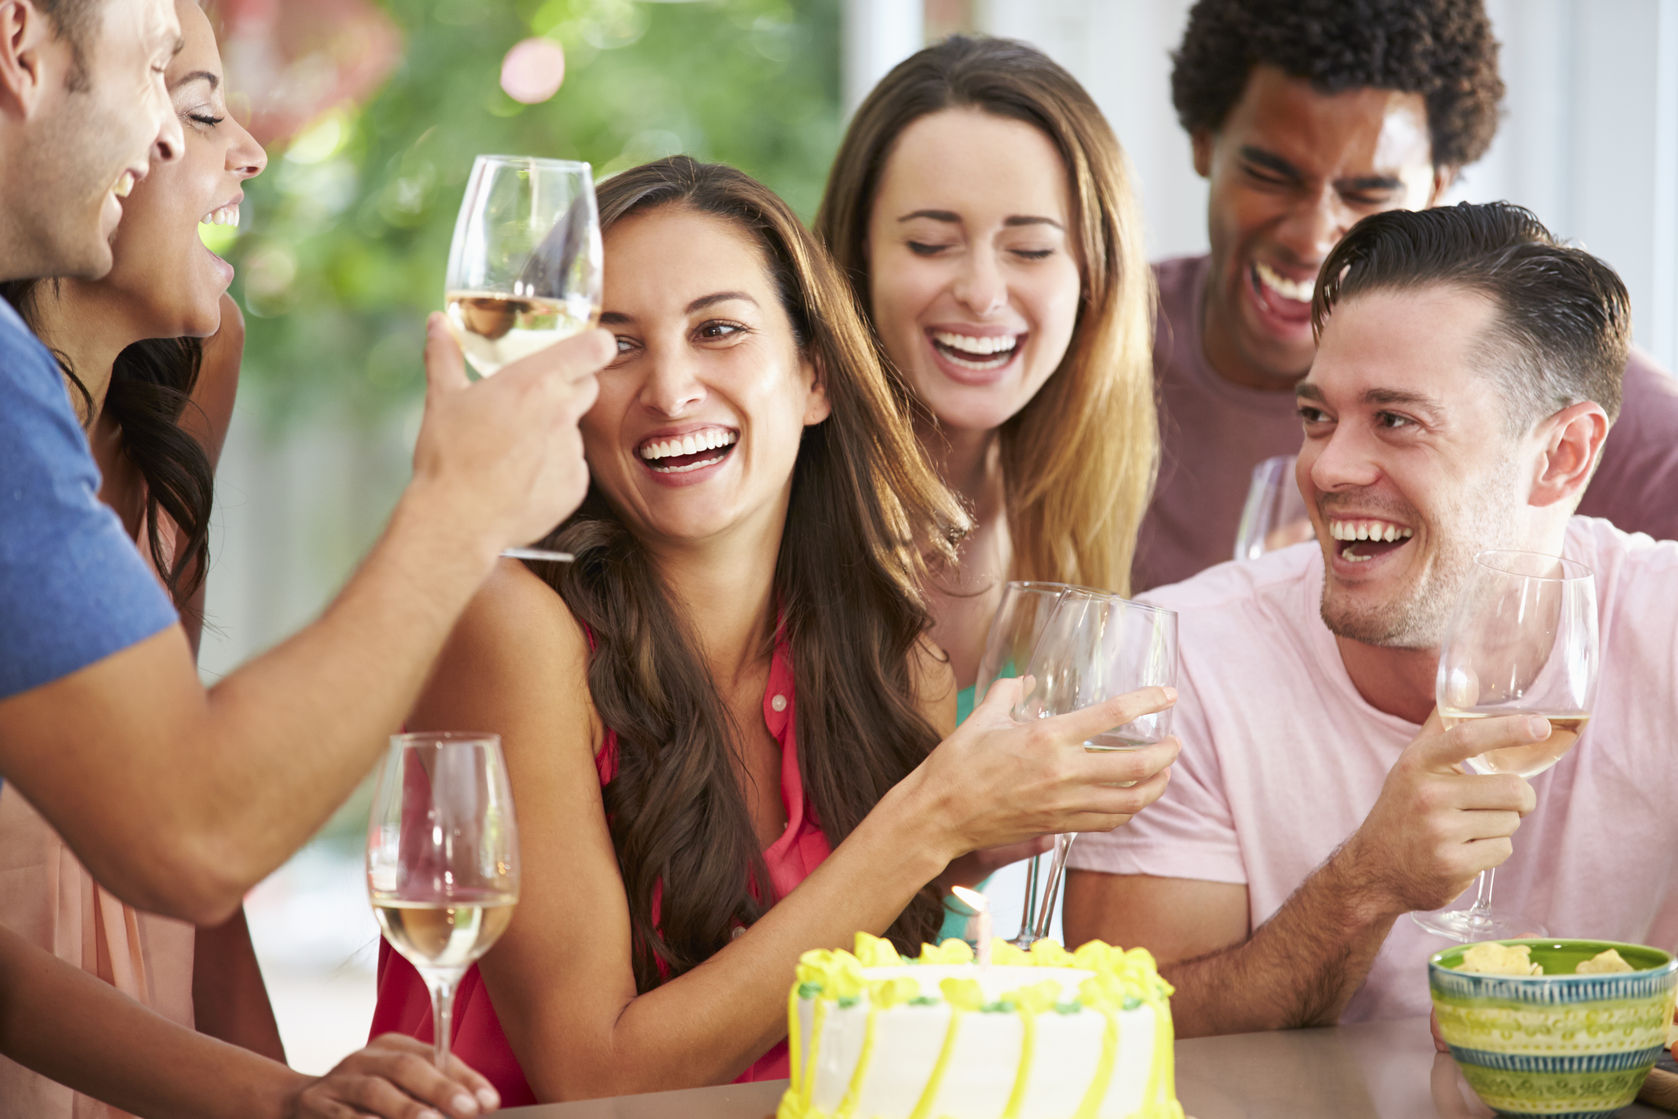 Wine is a great vehicle for sharing, and the more you know, the more you can share!